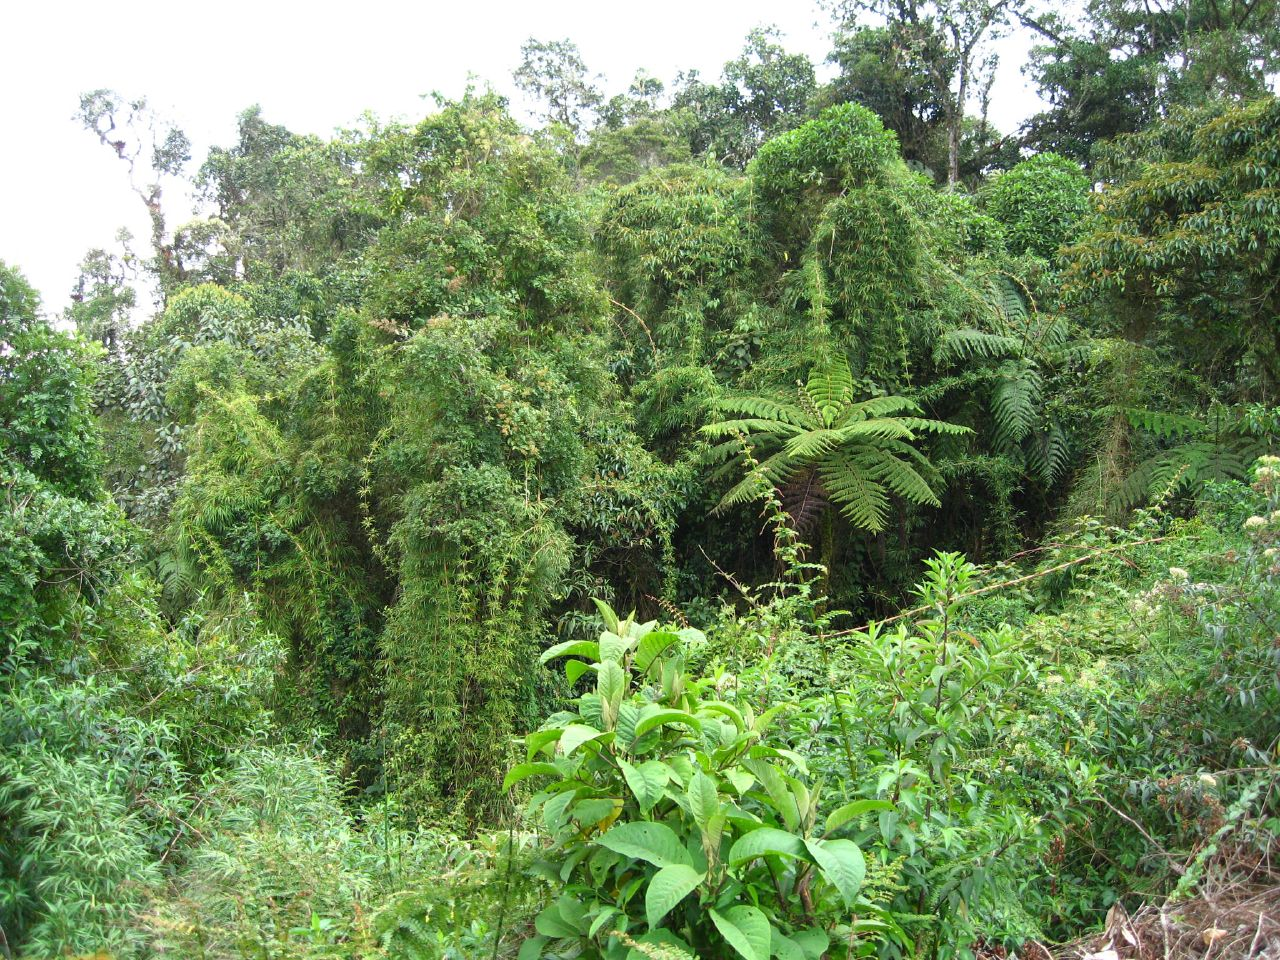 Amazon Jungle Plants Images & Pictures - Becuo